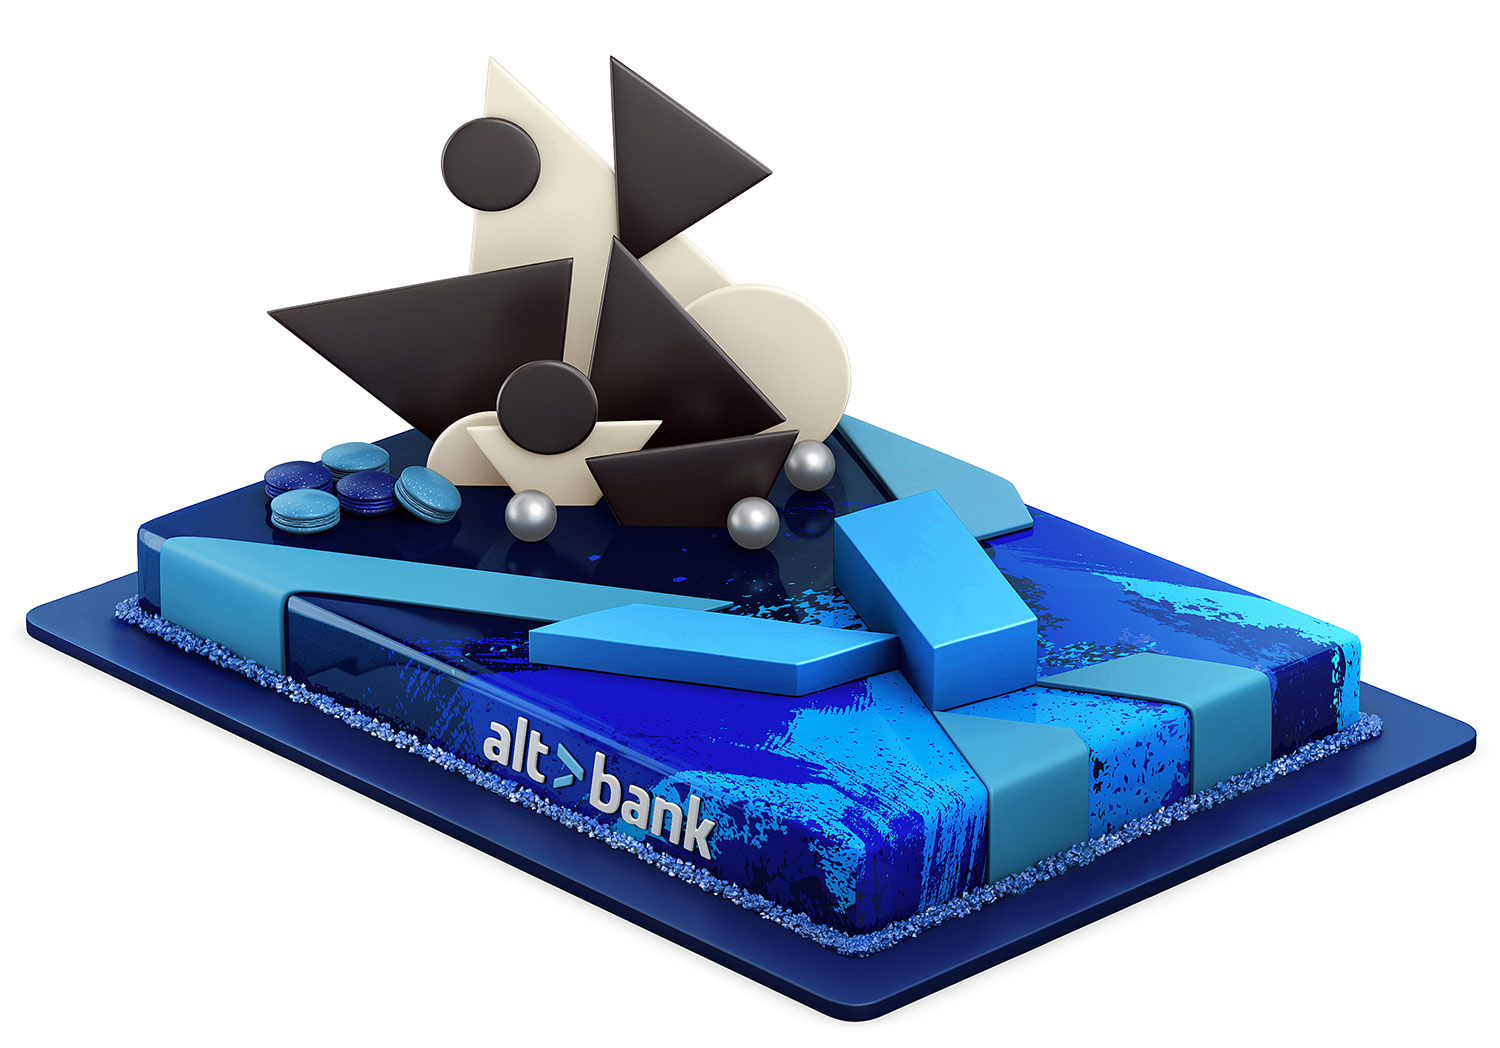 The corporate cake with the Altbank logo. Cake 3D model.